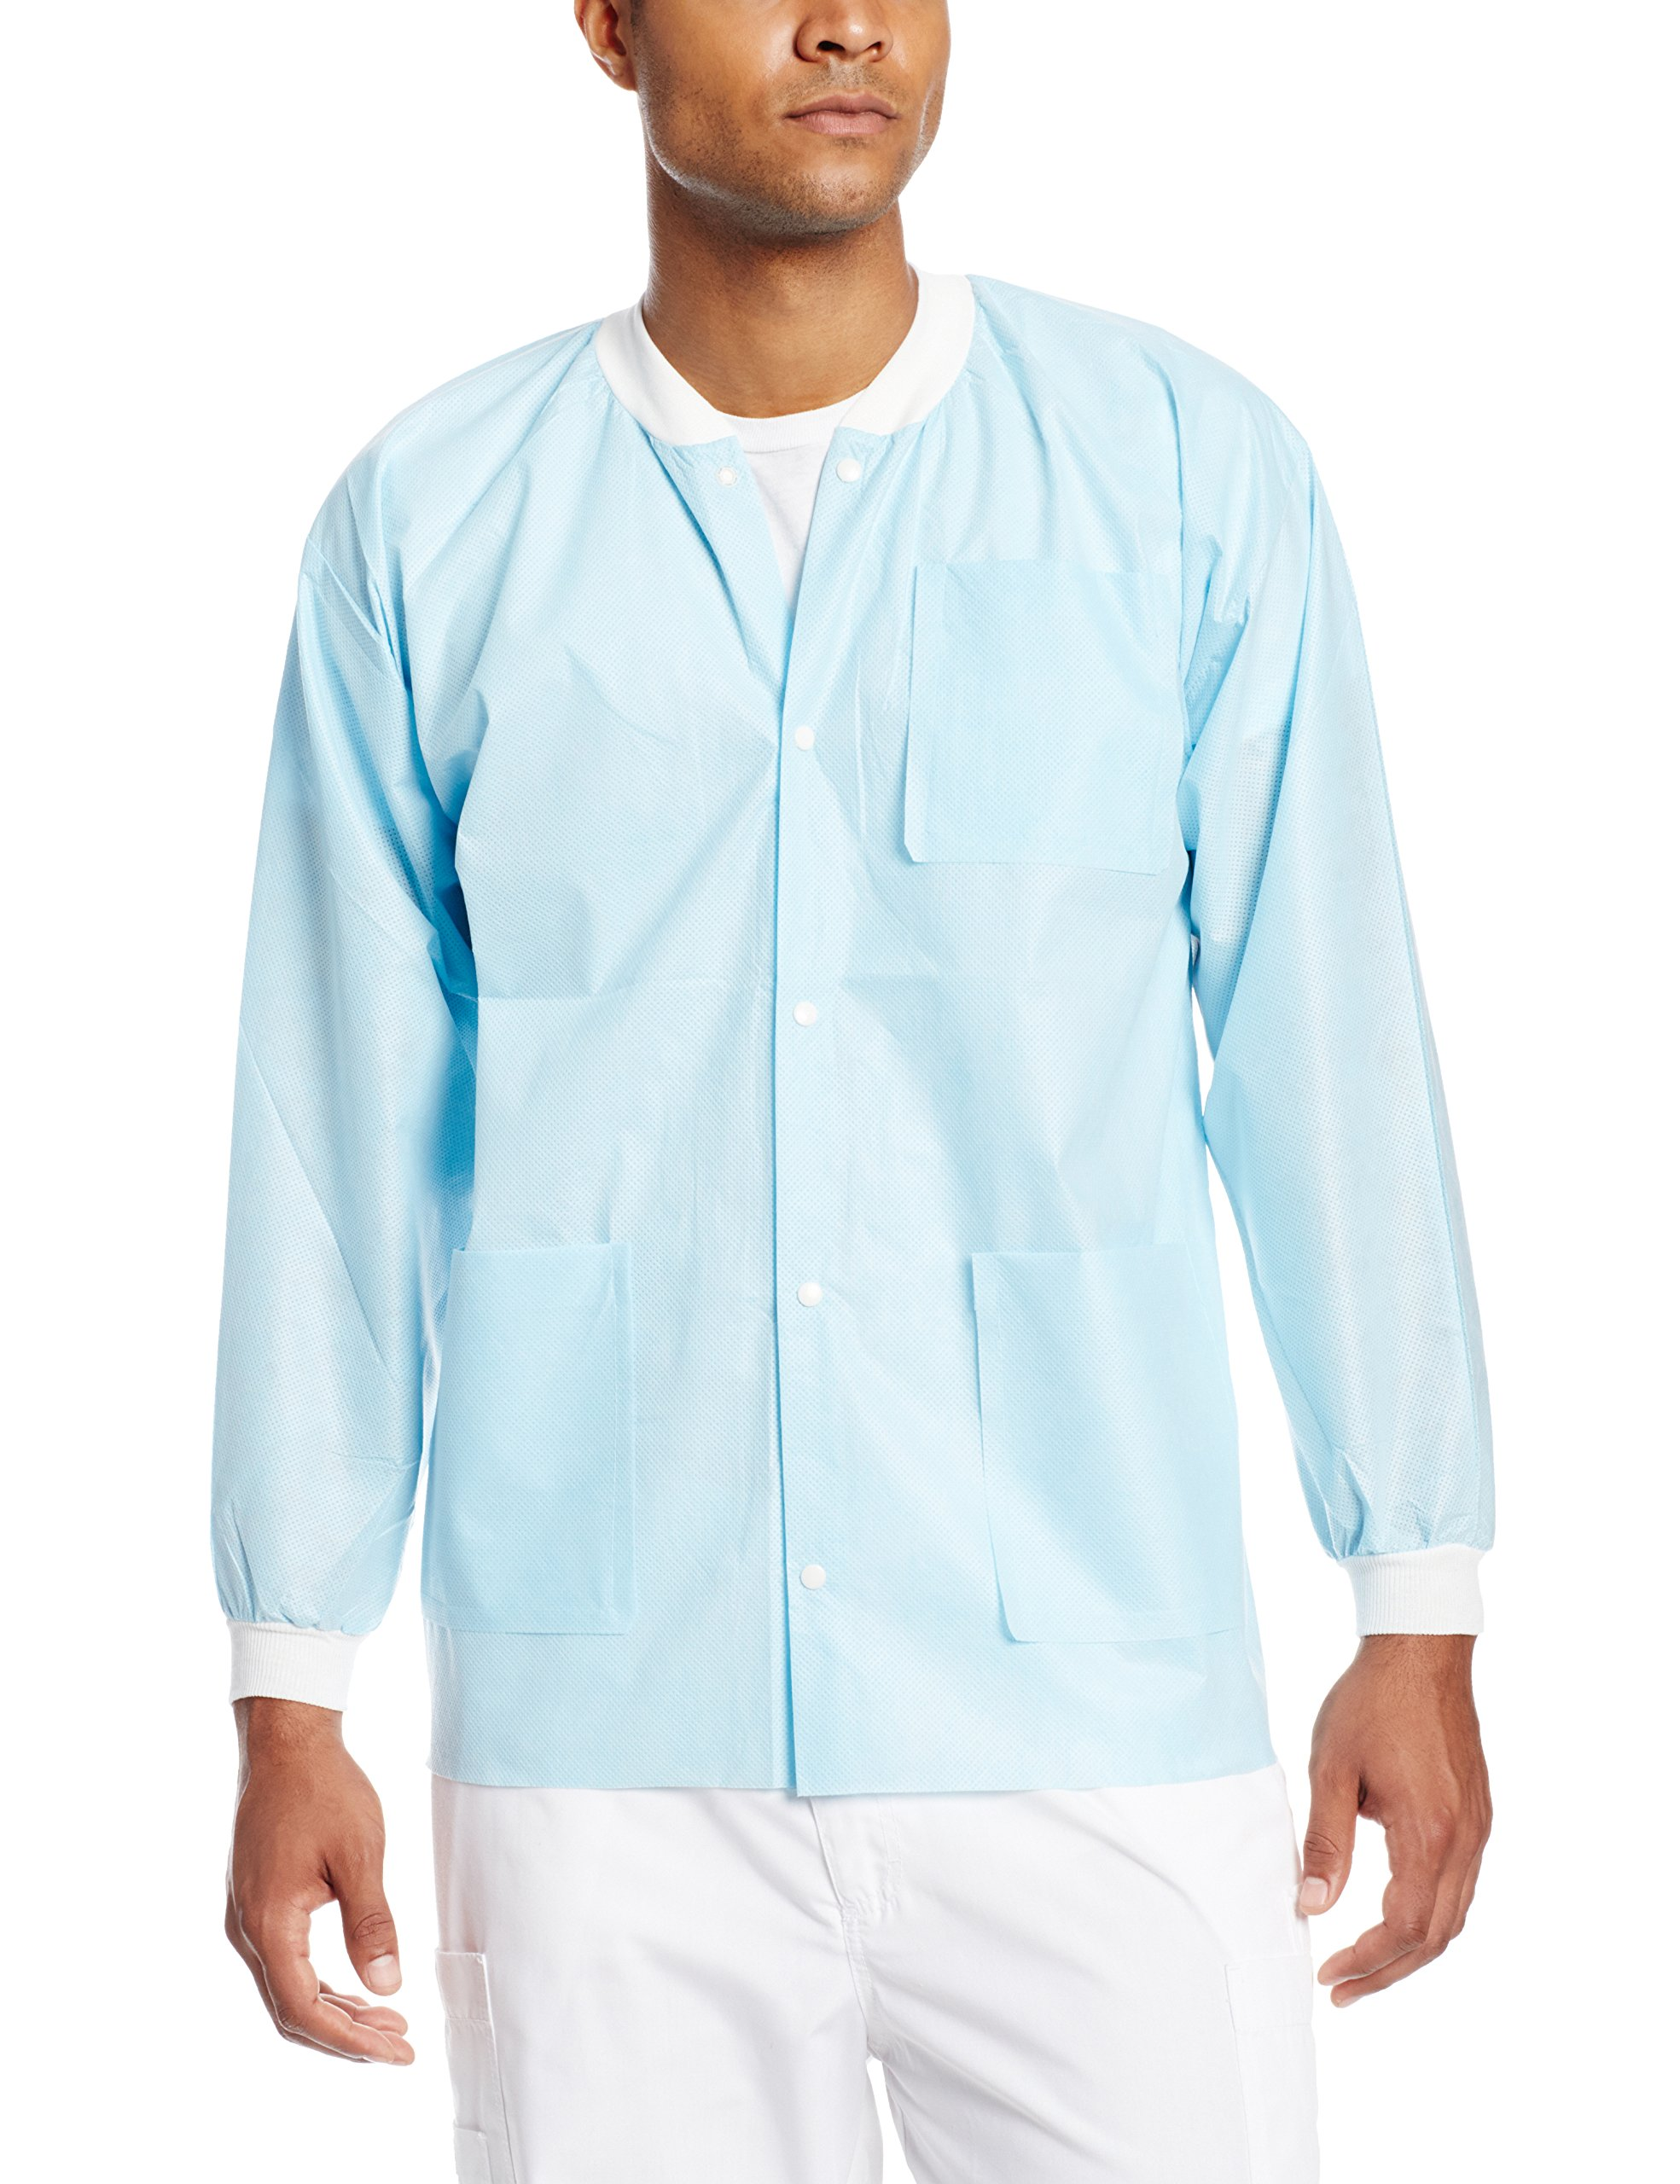 ValuMax 3630SBS Extra-Safe, Wrinkle-Free, Noble Looking Disposable SMS Hip Length Jacket, Sky Blue, S, Pack of 10